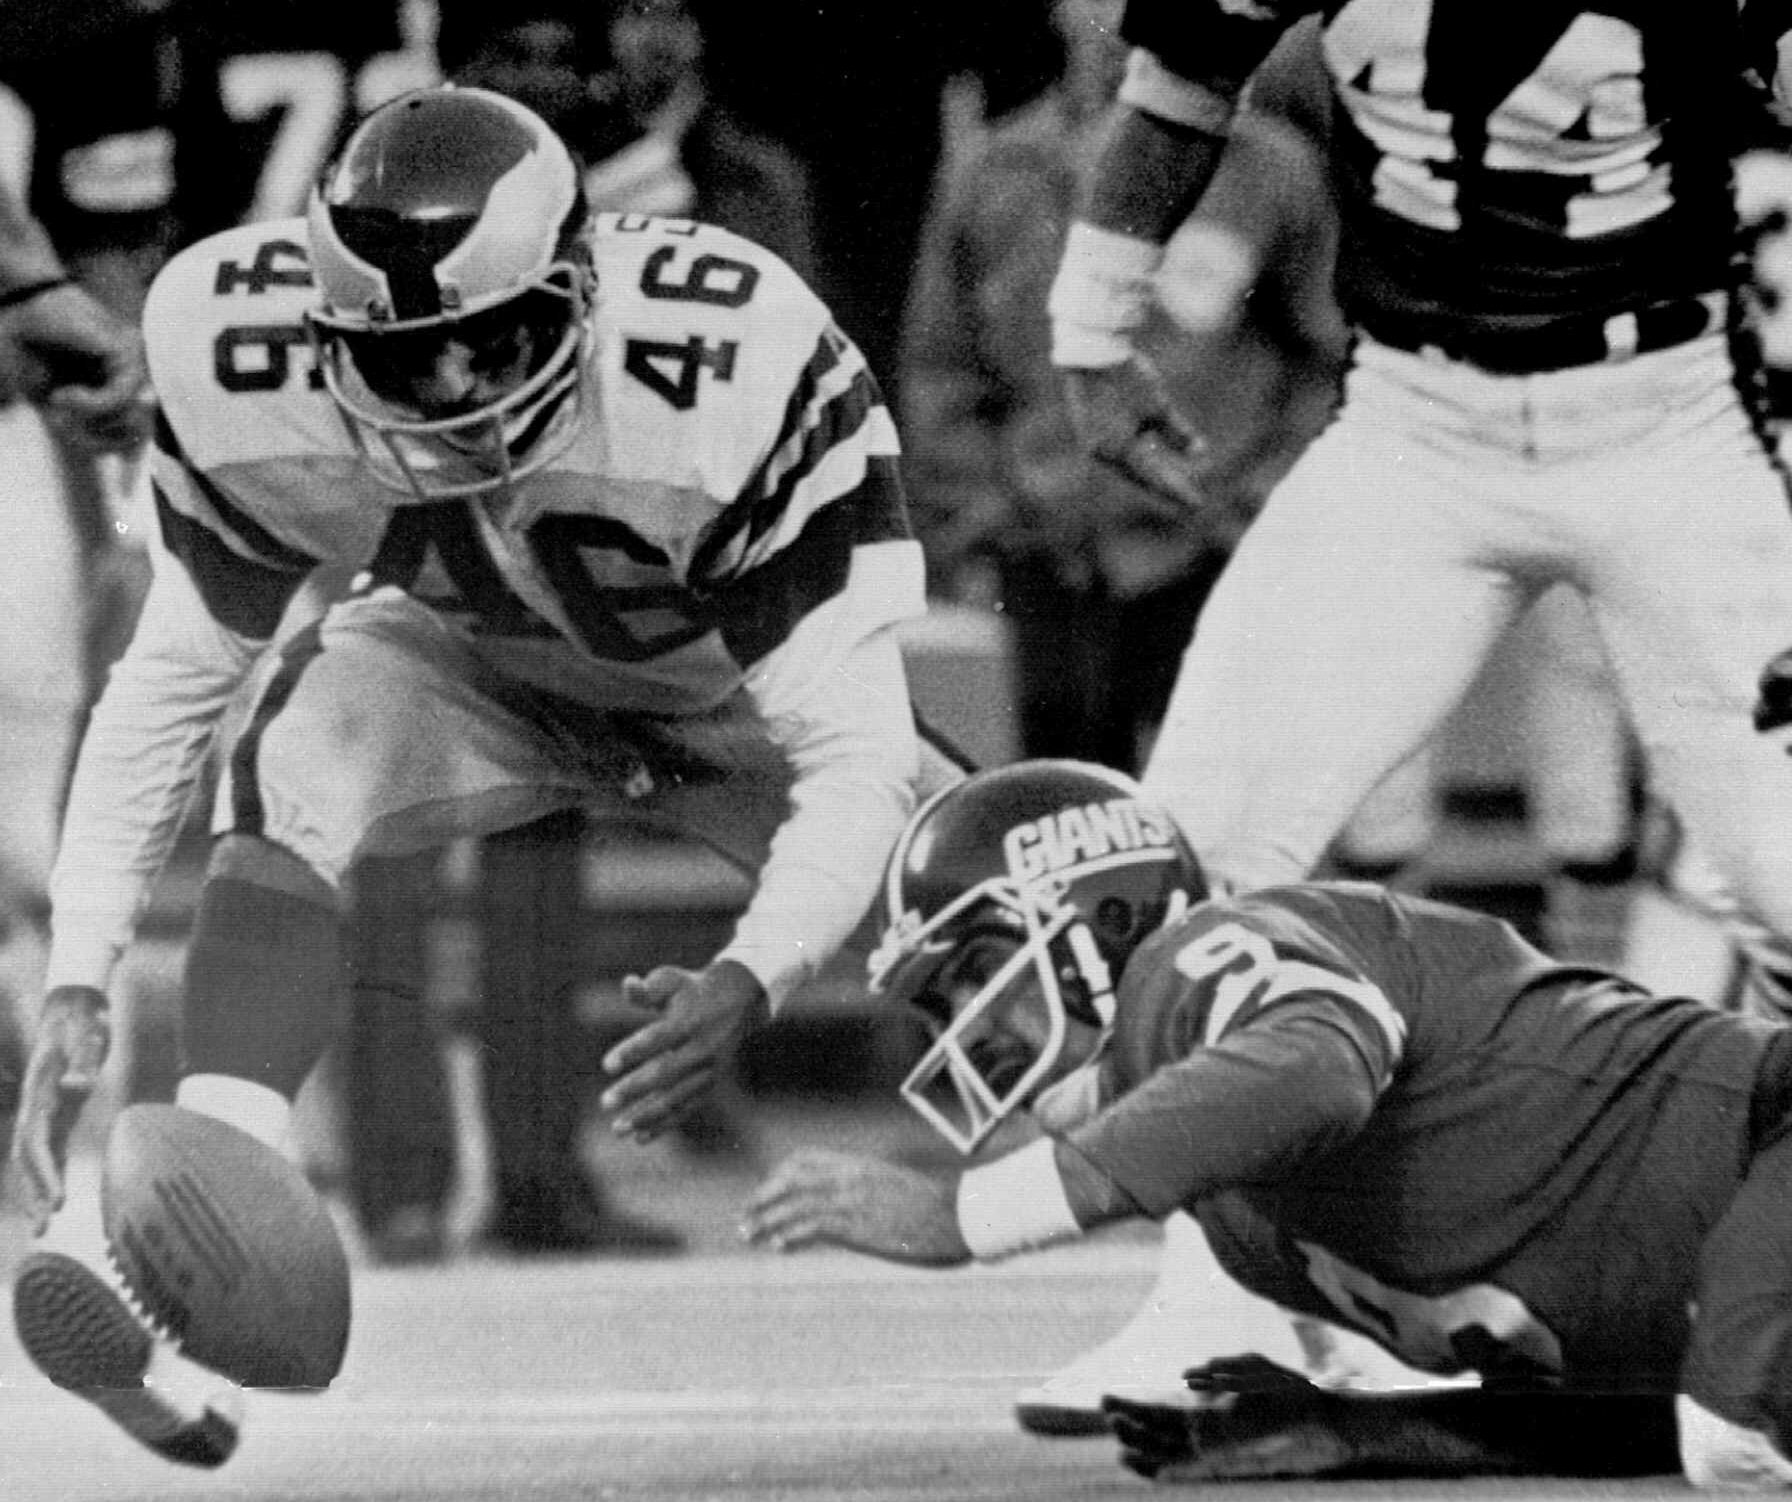 Herman Edwards (46) pounces on a fumble by Giants quarterback Joe Pisarcik (9) for the first Miracle in the Meadowlands.